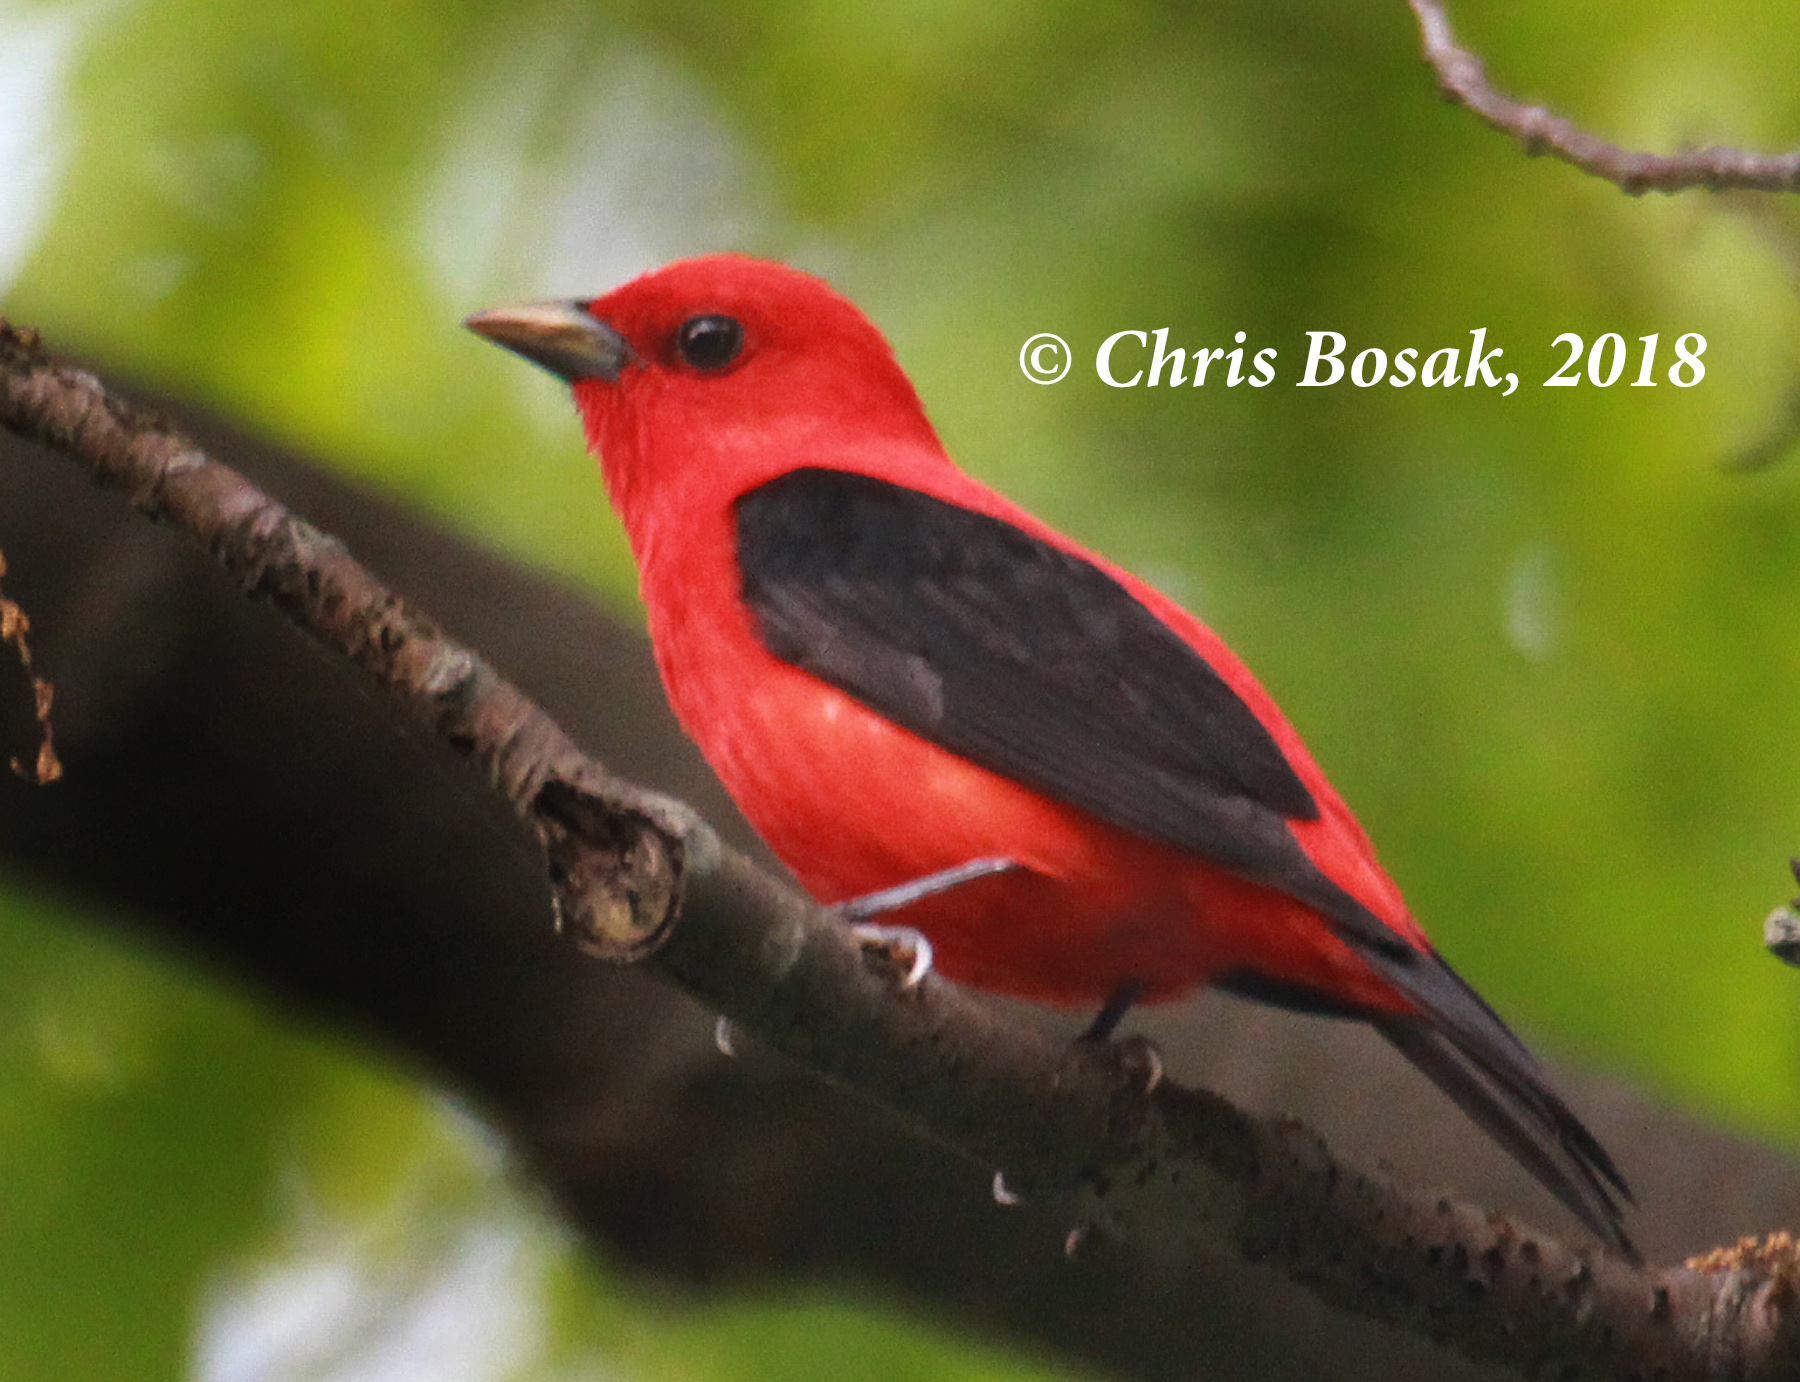 Photo by Chris Bosak A scarlet tanager perches in an oak tree in Danbury, Conn., spring 2018.